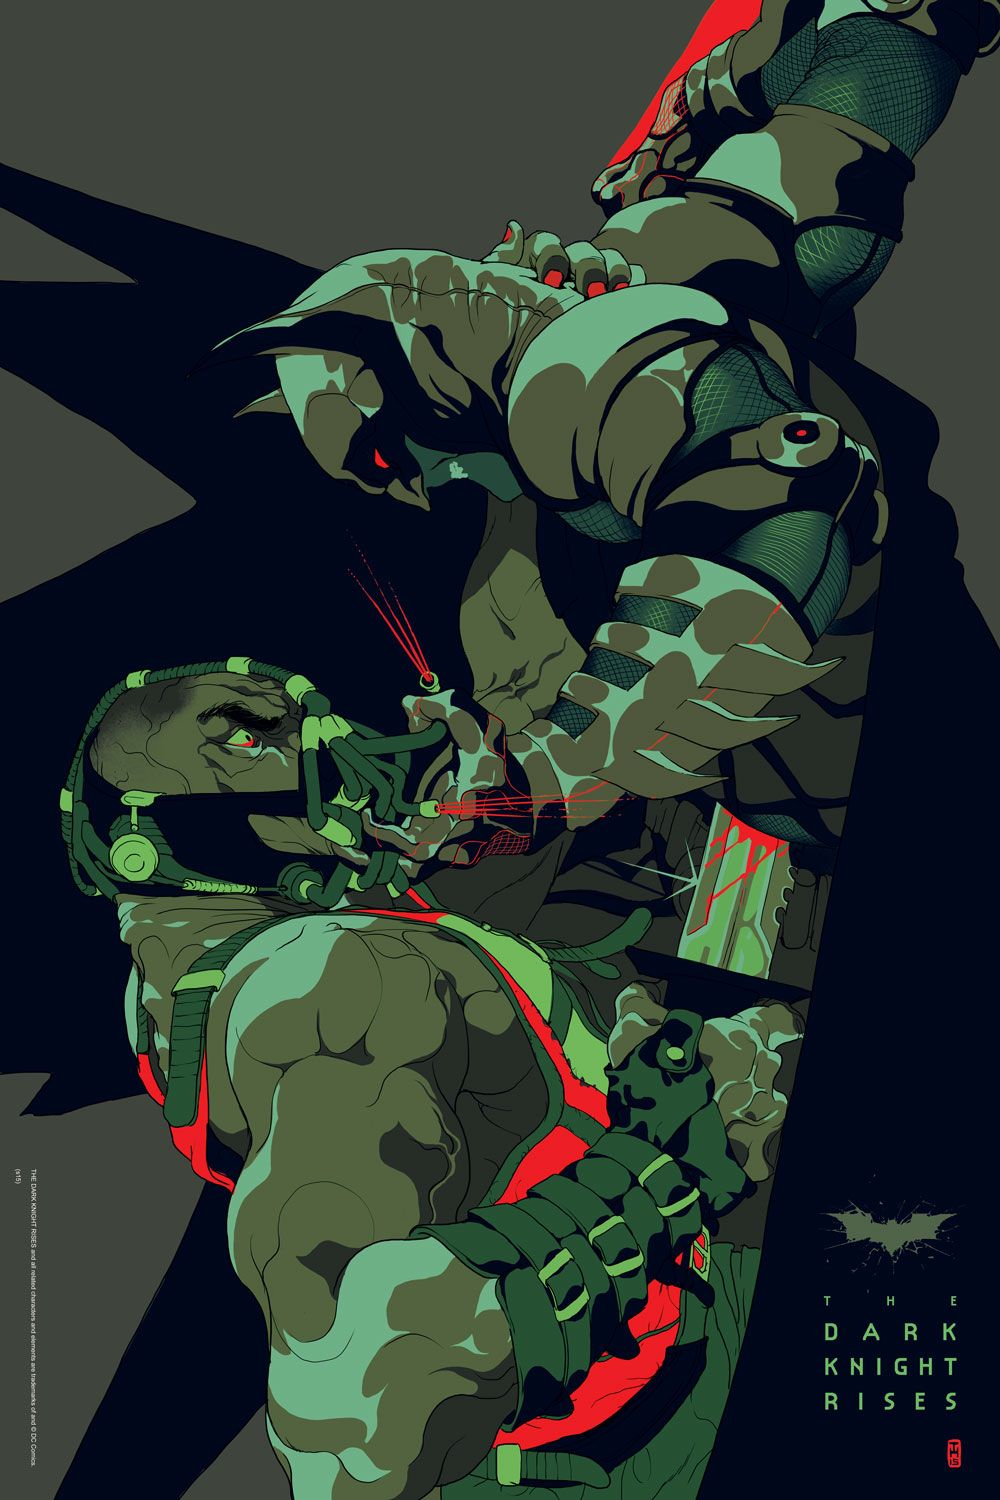 tomer hanuka dark knight rises movie poster jpg times  tomer hanuka dark knight rises movie poster 2016